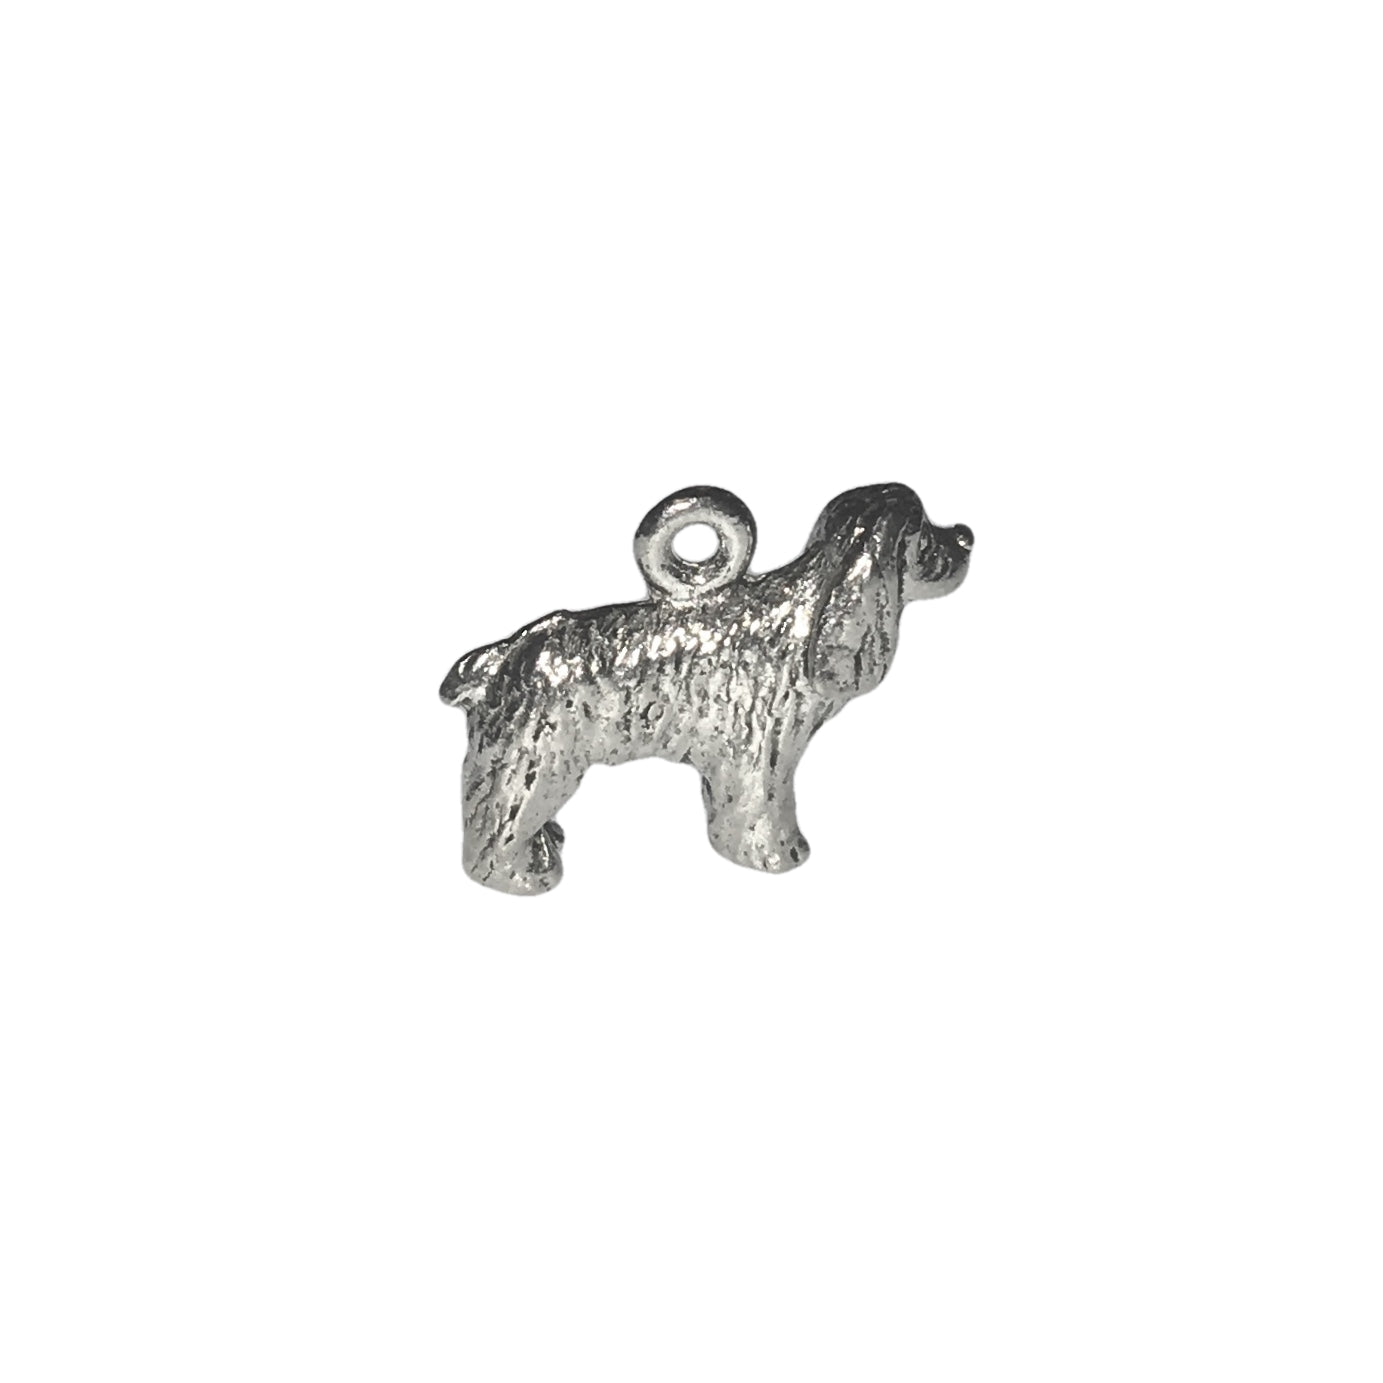 Cocker Spaniel Charms - Qty 5 - Lead Free Pewter Silver - American Made